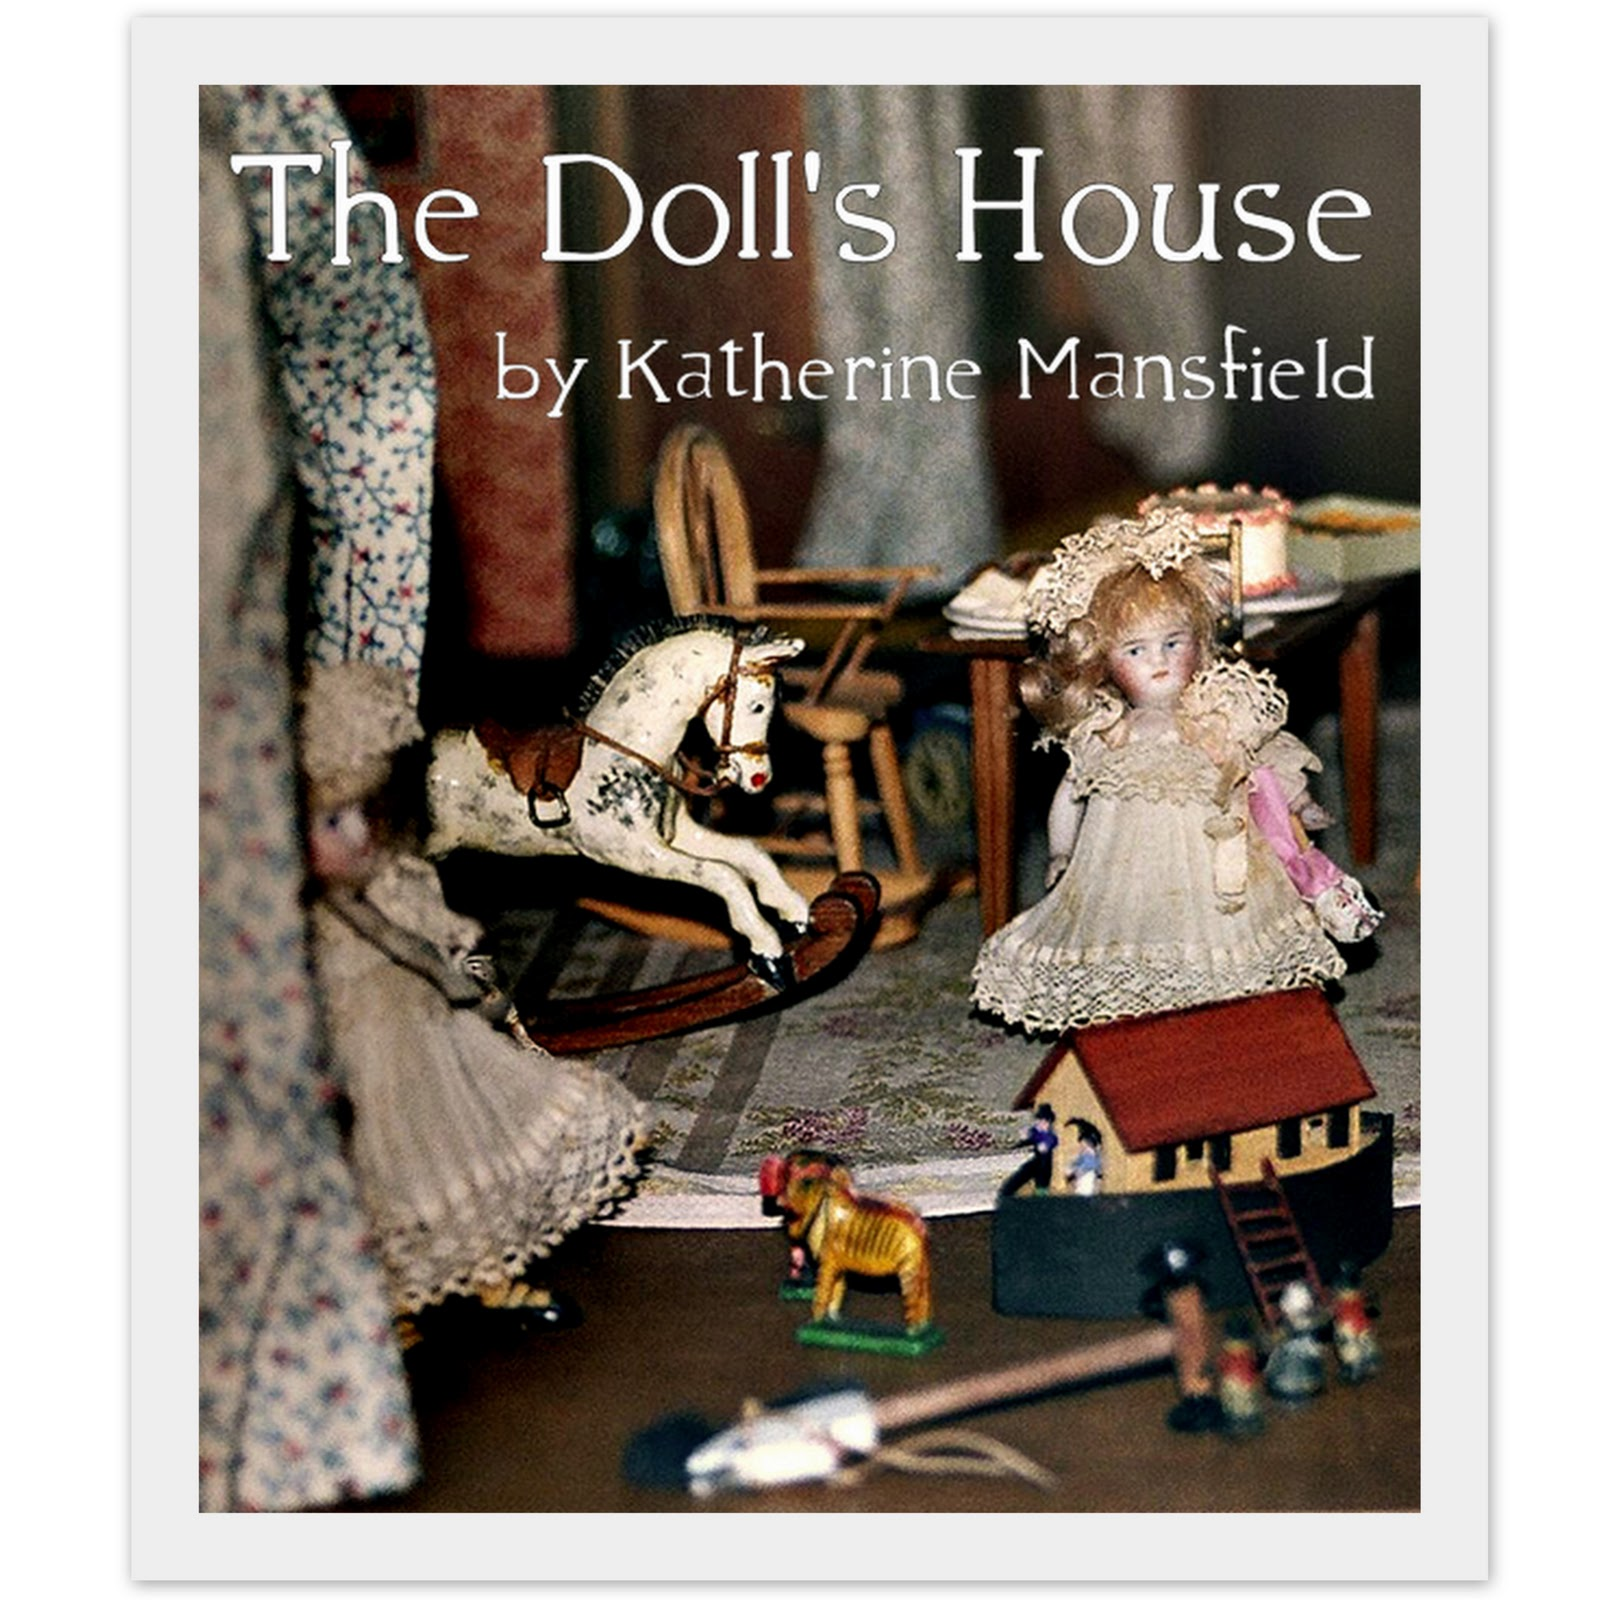 the dollís house by katherine mansfield essay The doll house is symbolic of the upper class people in this society the burnell children would have attended a ritzy private school had there been one nearby, but as it is, their school is the only one for miles, so they are forced to attend a school that has a mixed group of children - both high class and low class.